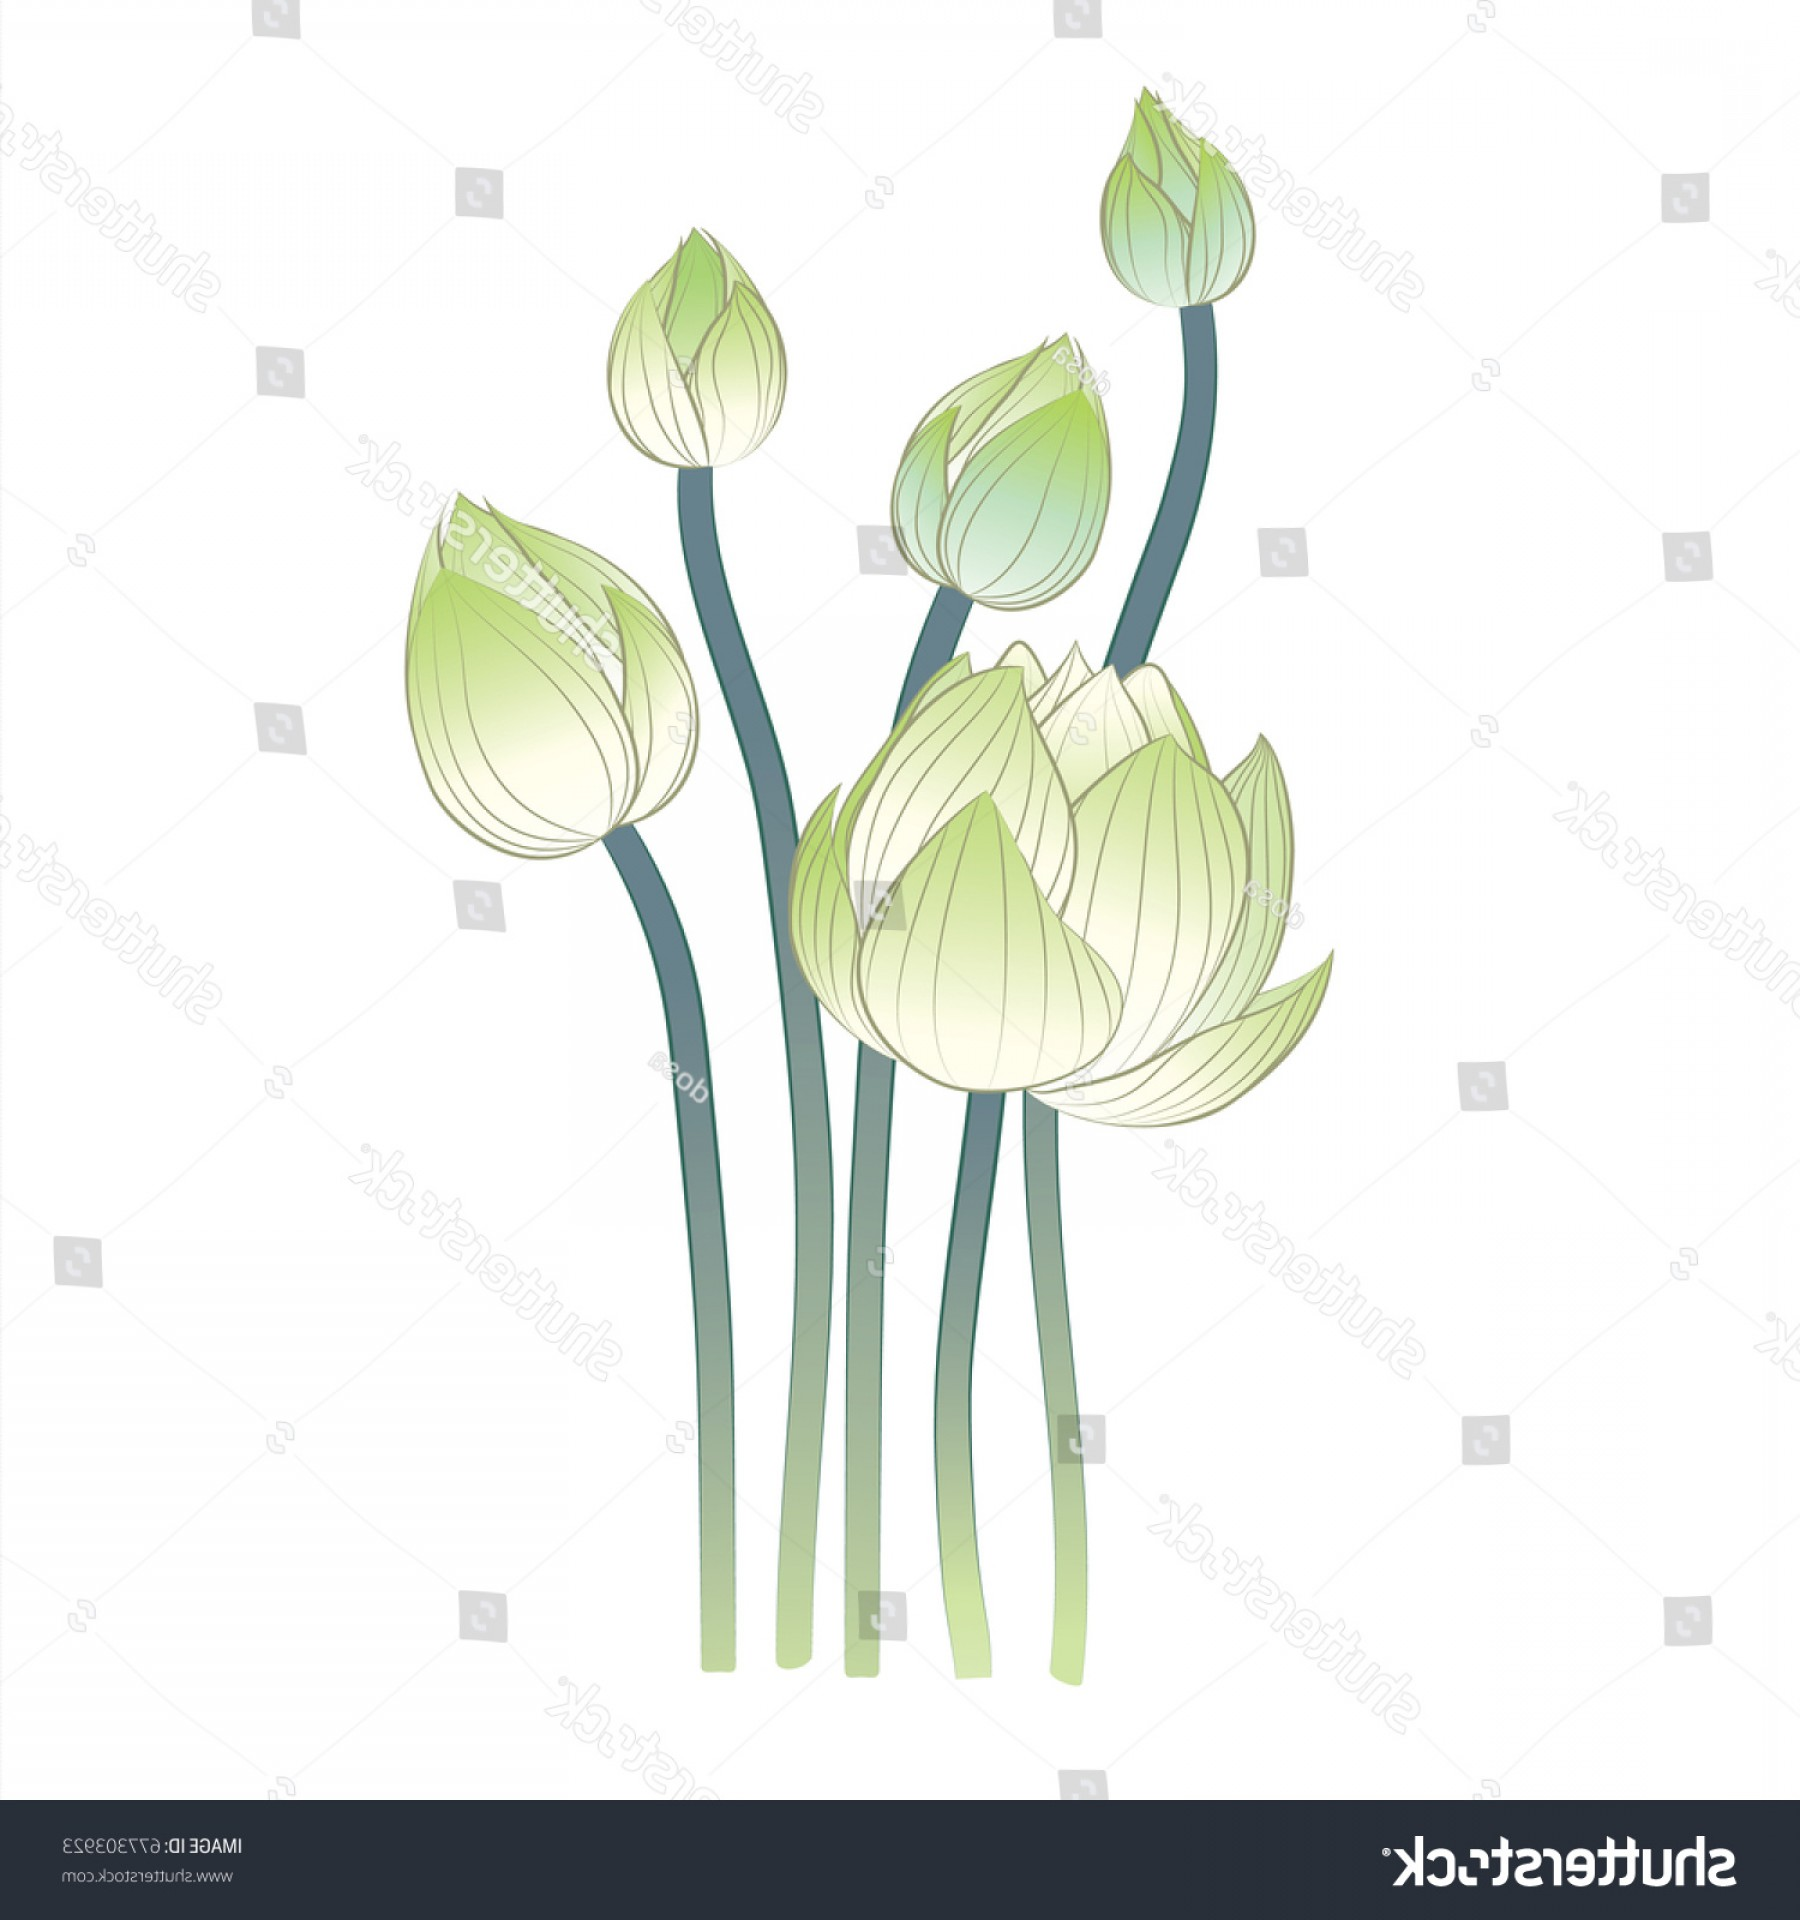 Vector Image Of A Budding Flower: Group Budding Lotus Flowers Vector Illustration